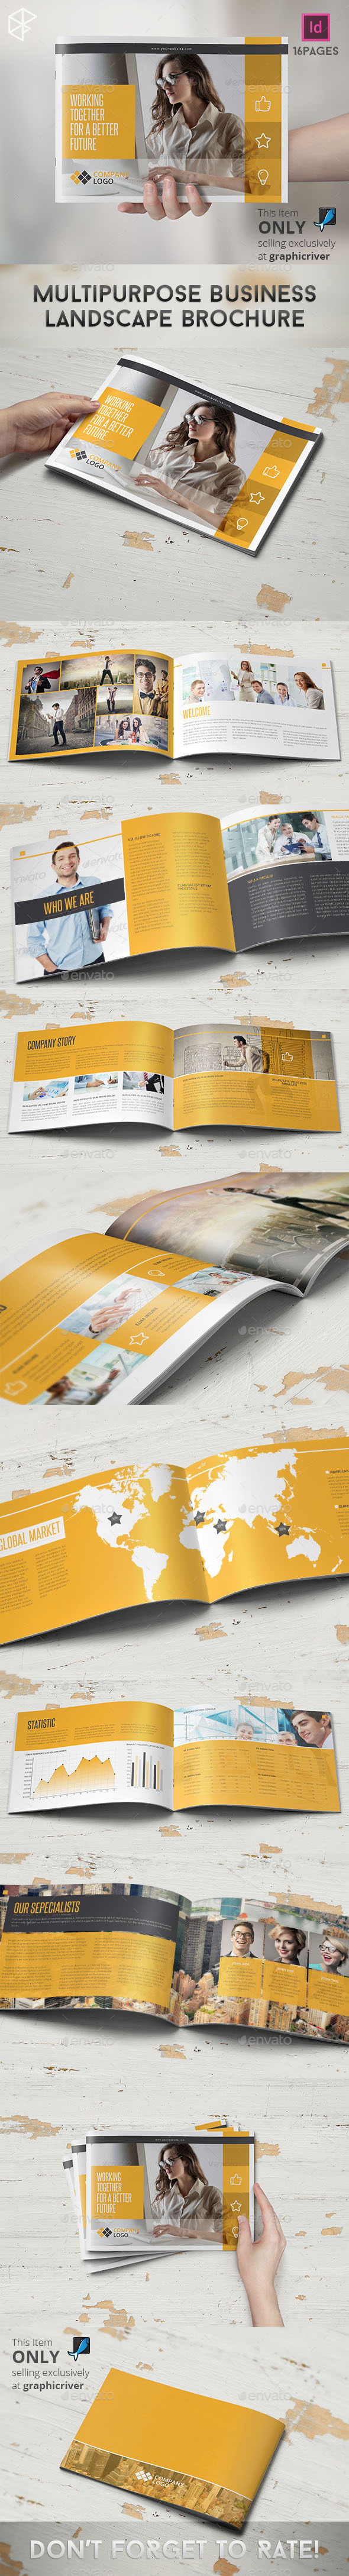 GraphicRiver Multipurpose Business Landscape Brochure 10302654